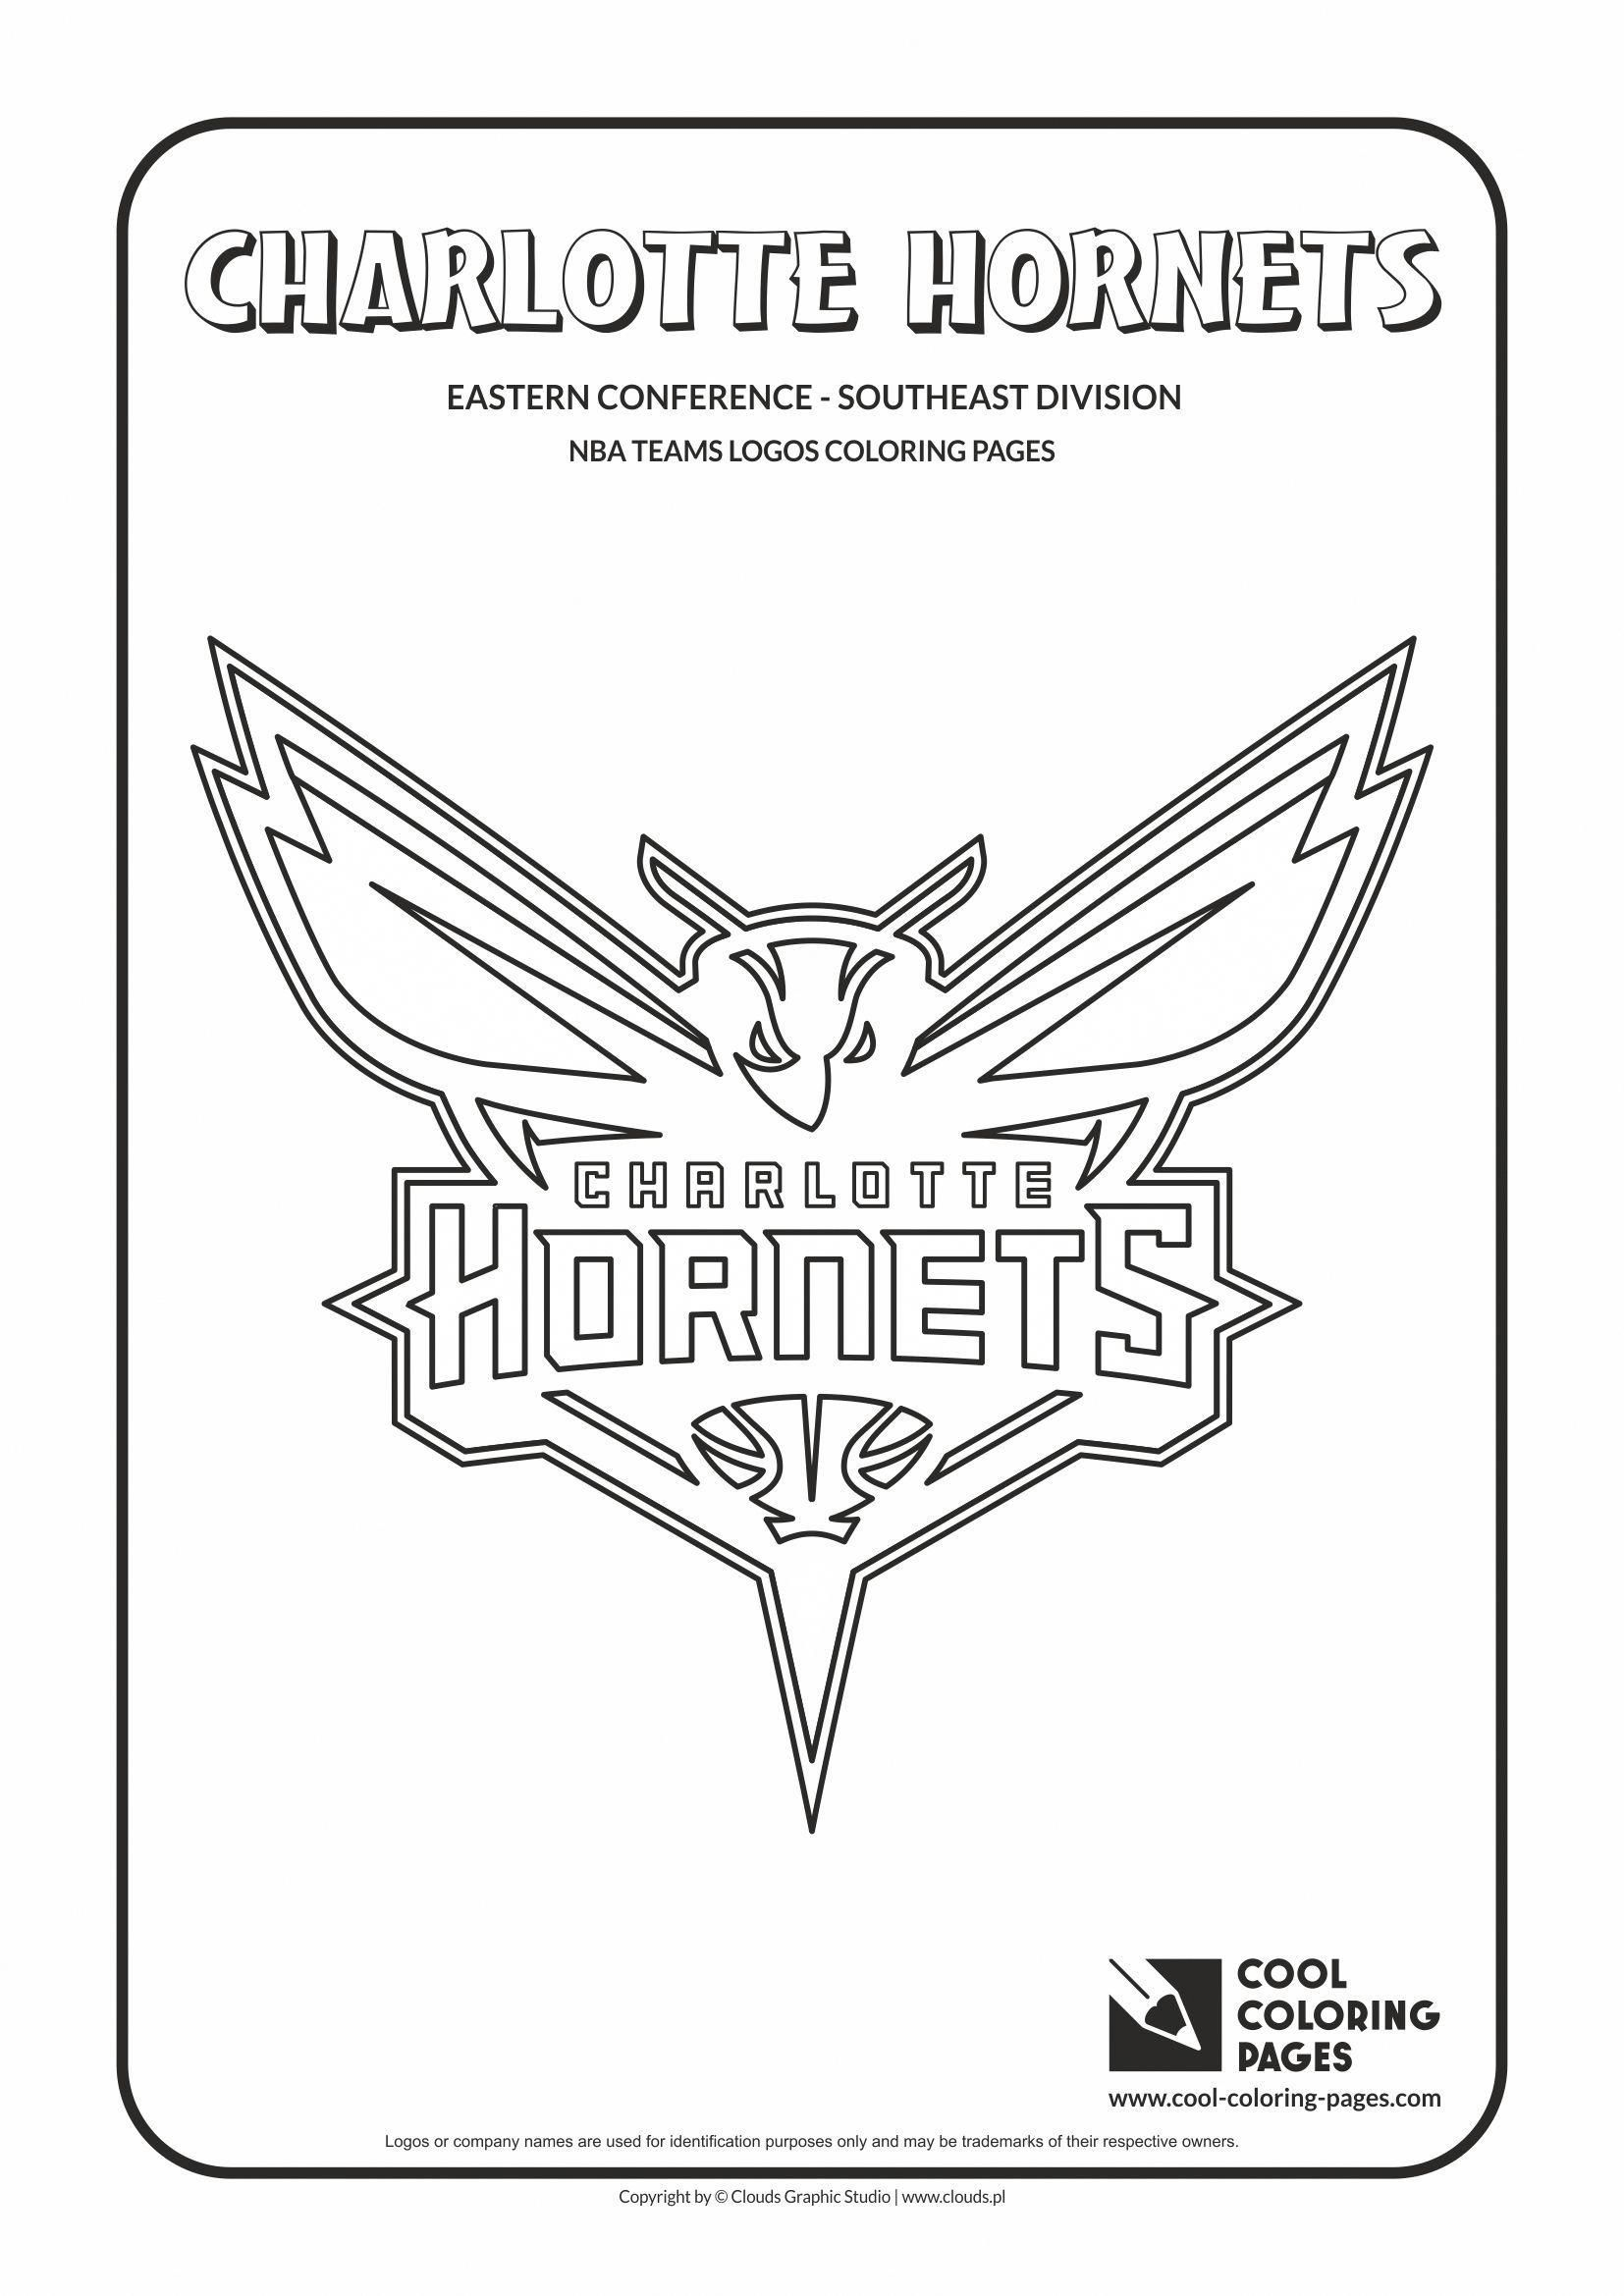 Cool Coloring Pages - NBA Basketball Clubs Logos - Easter Conference ...